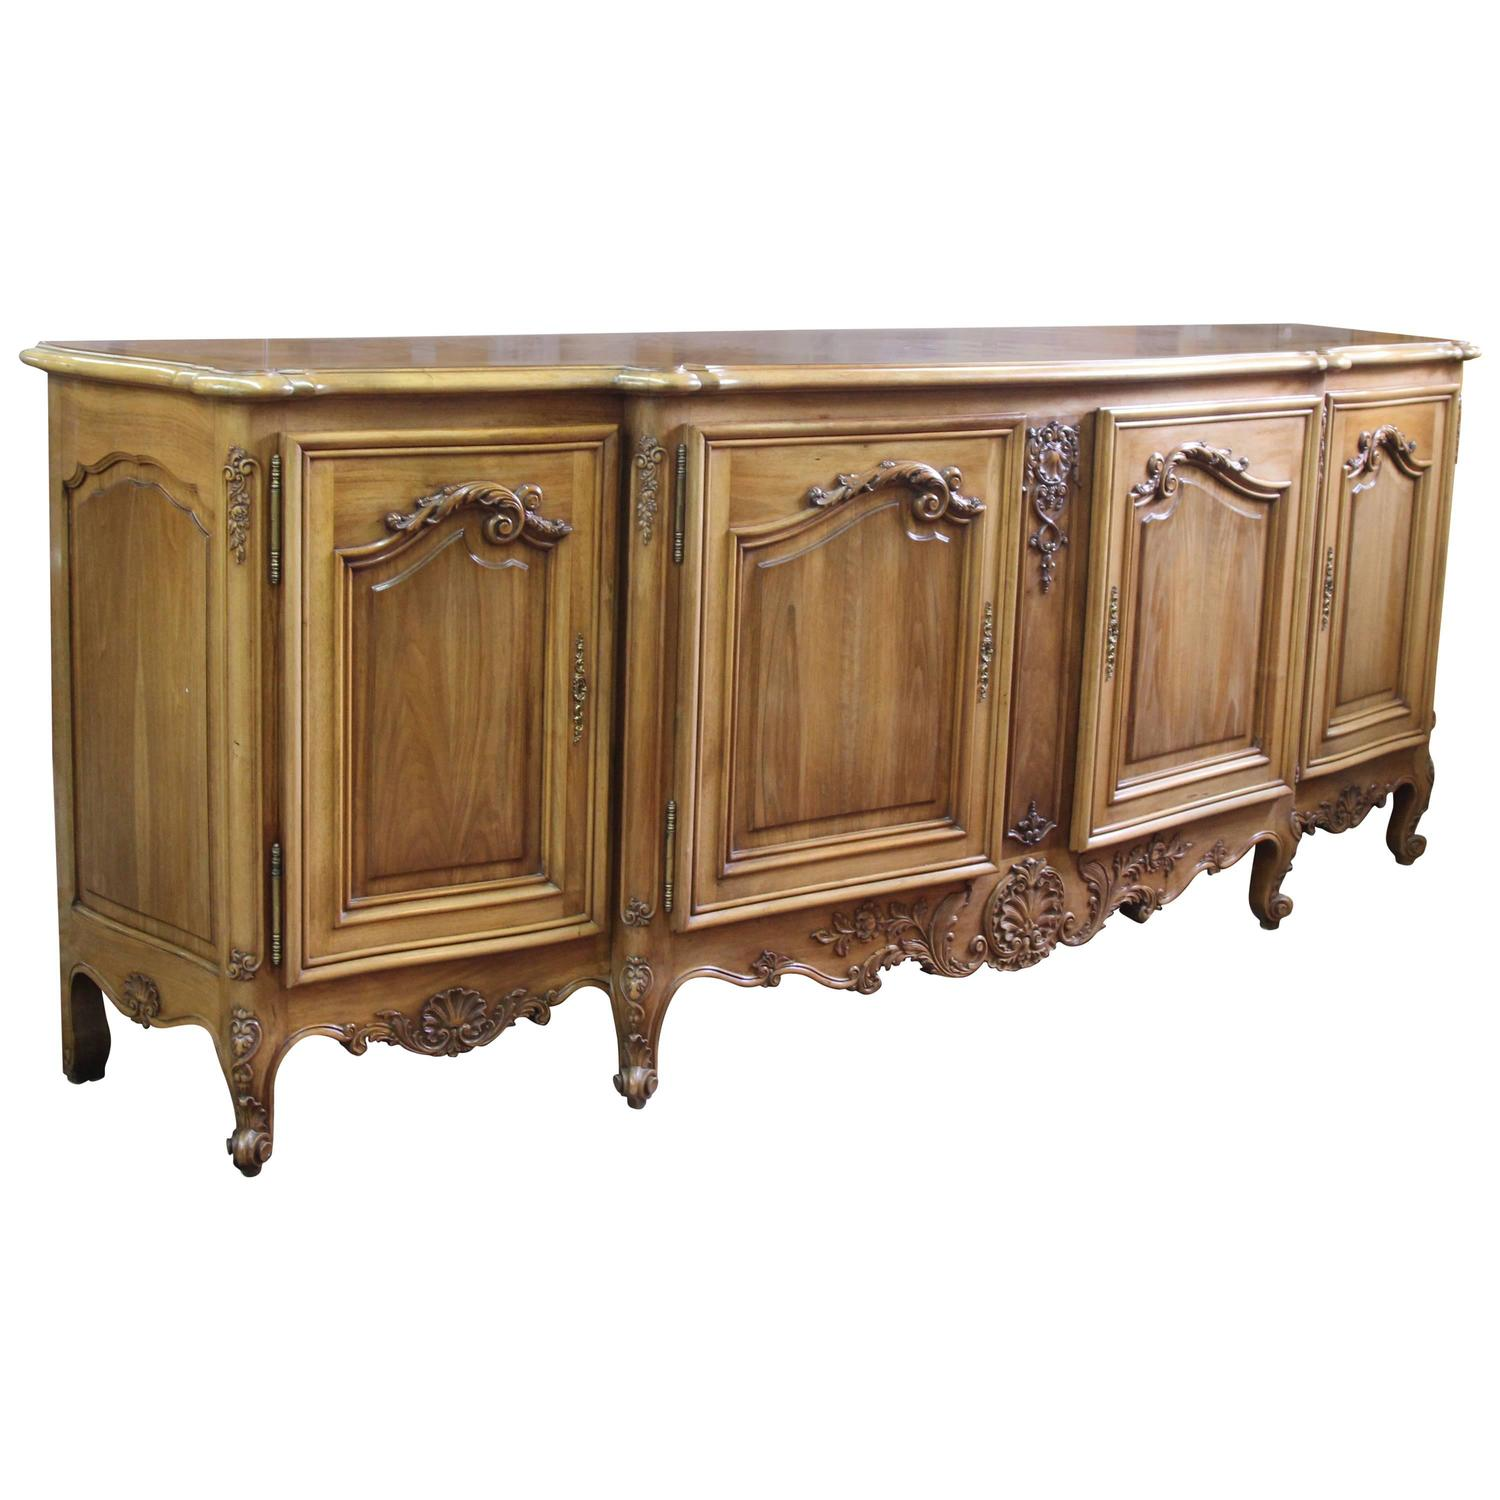 French dining room buffet or server at 1stdibs - Dining room server furniture ...